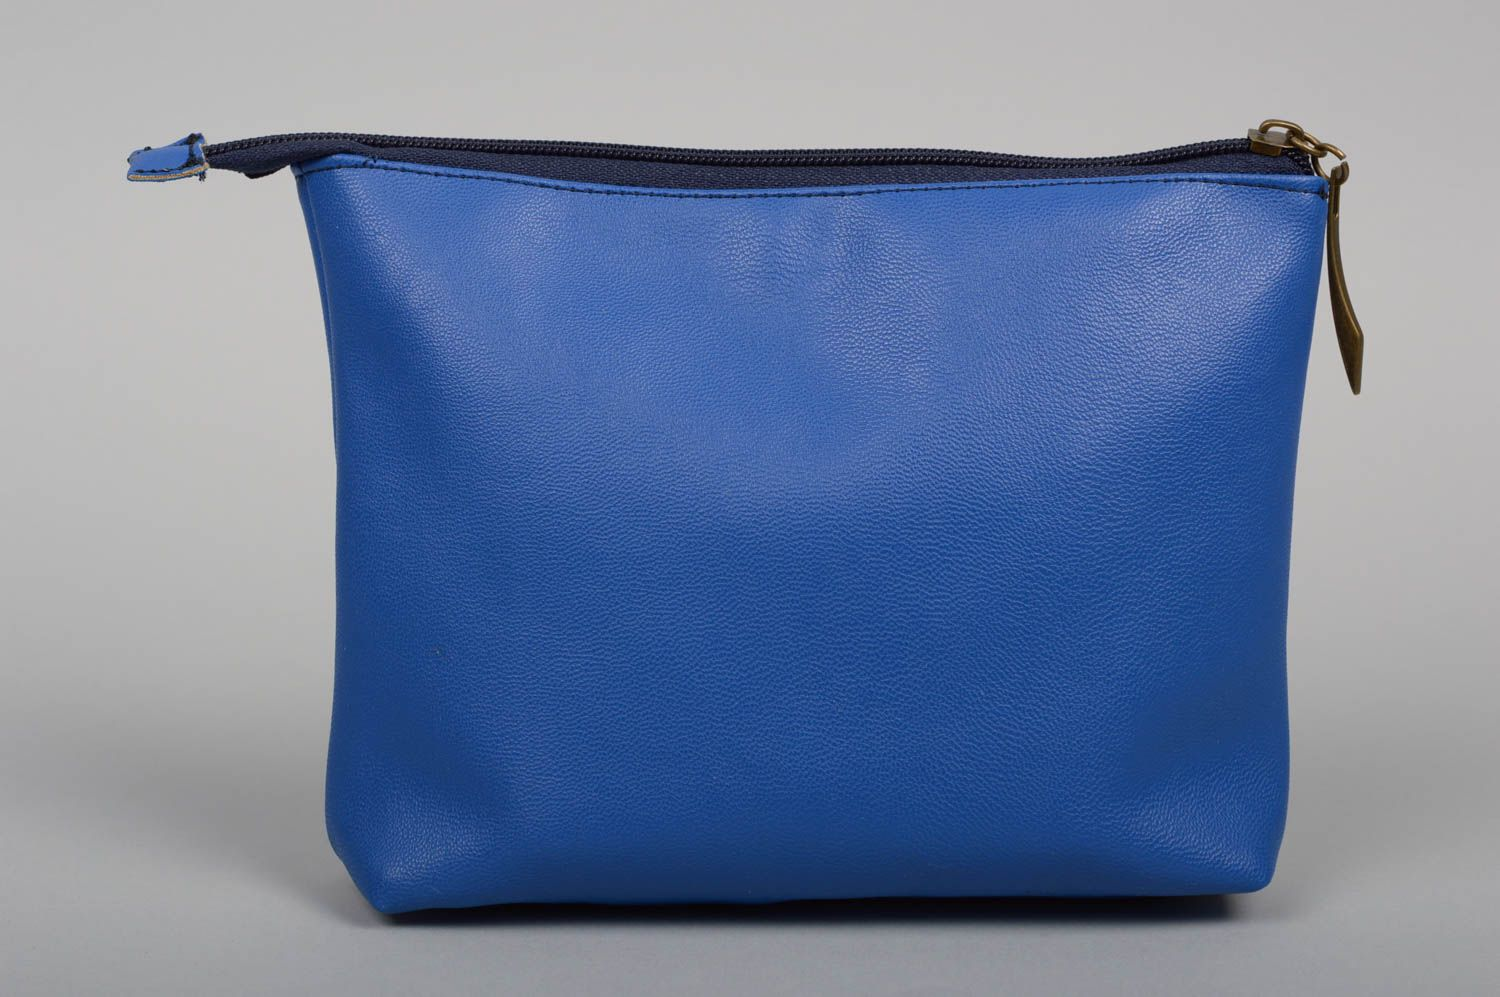 Handmade clutch bag women blue clutch leatherette bag unusual female accessory photo 2